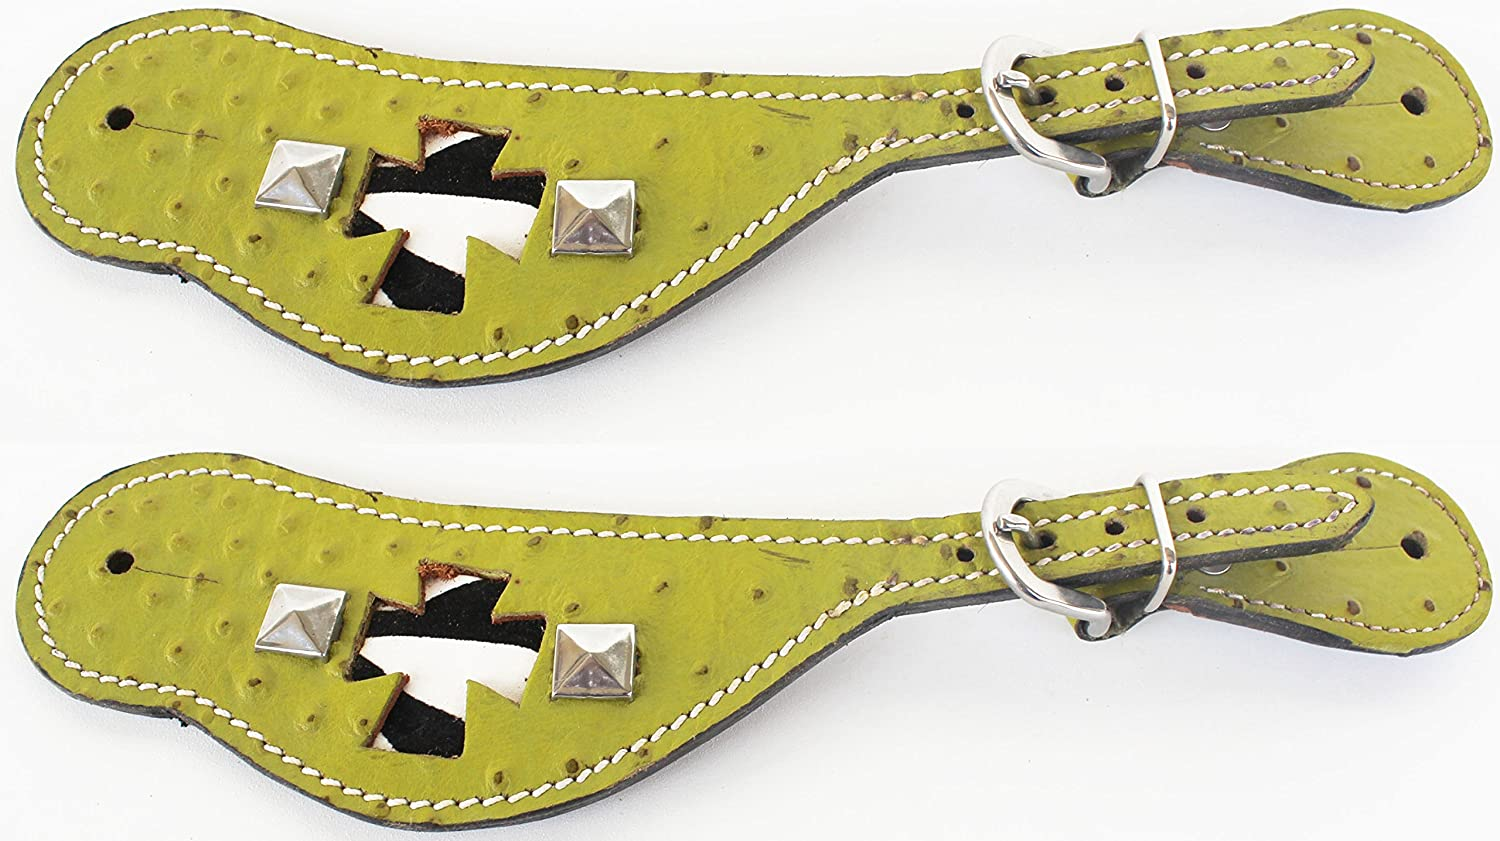 PRORIDER Horse Western Riding Cowboy Boots Leather Spur Straps Tack 7473